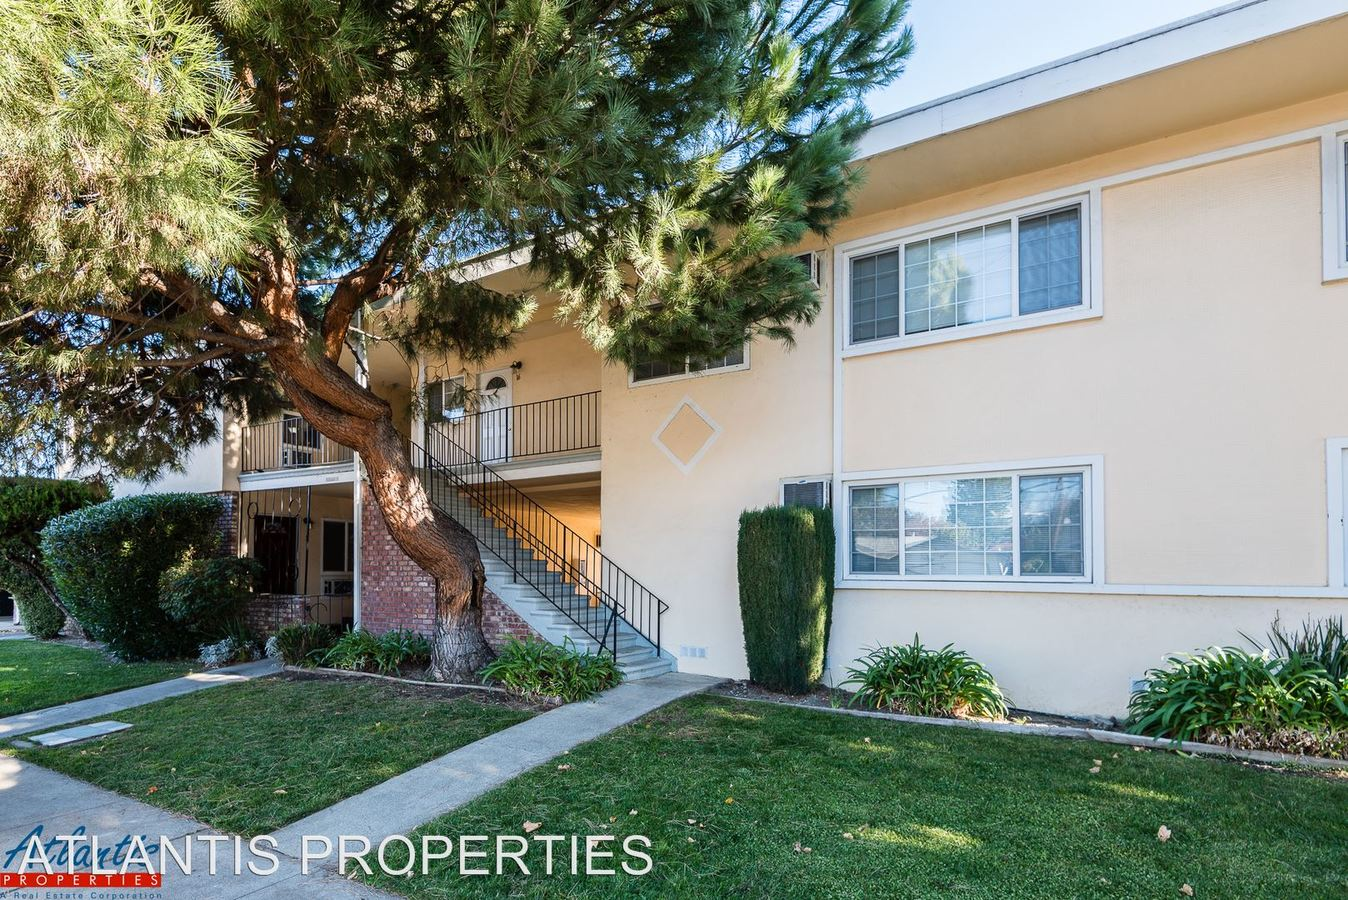 2 Bedrooms 1 Bathroom Apartment for rent at 935 Pomeroy Ave in Santa Clara, CA